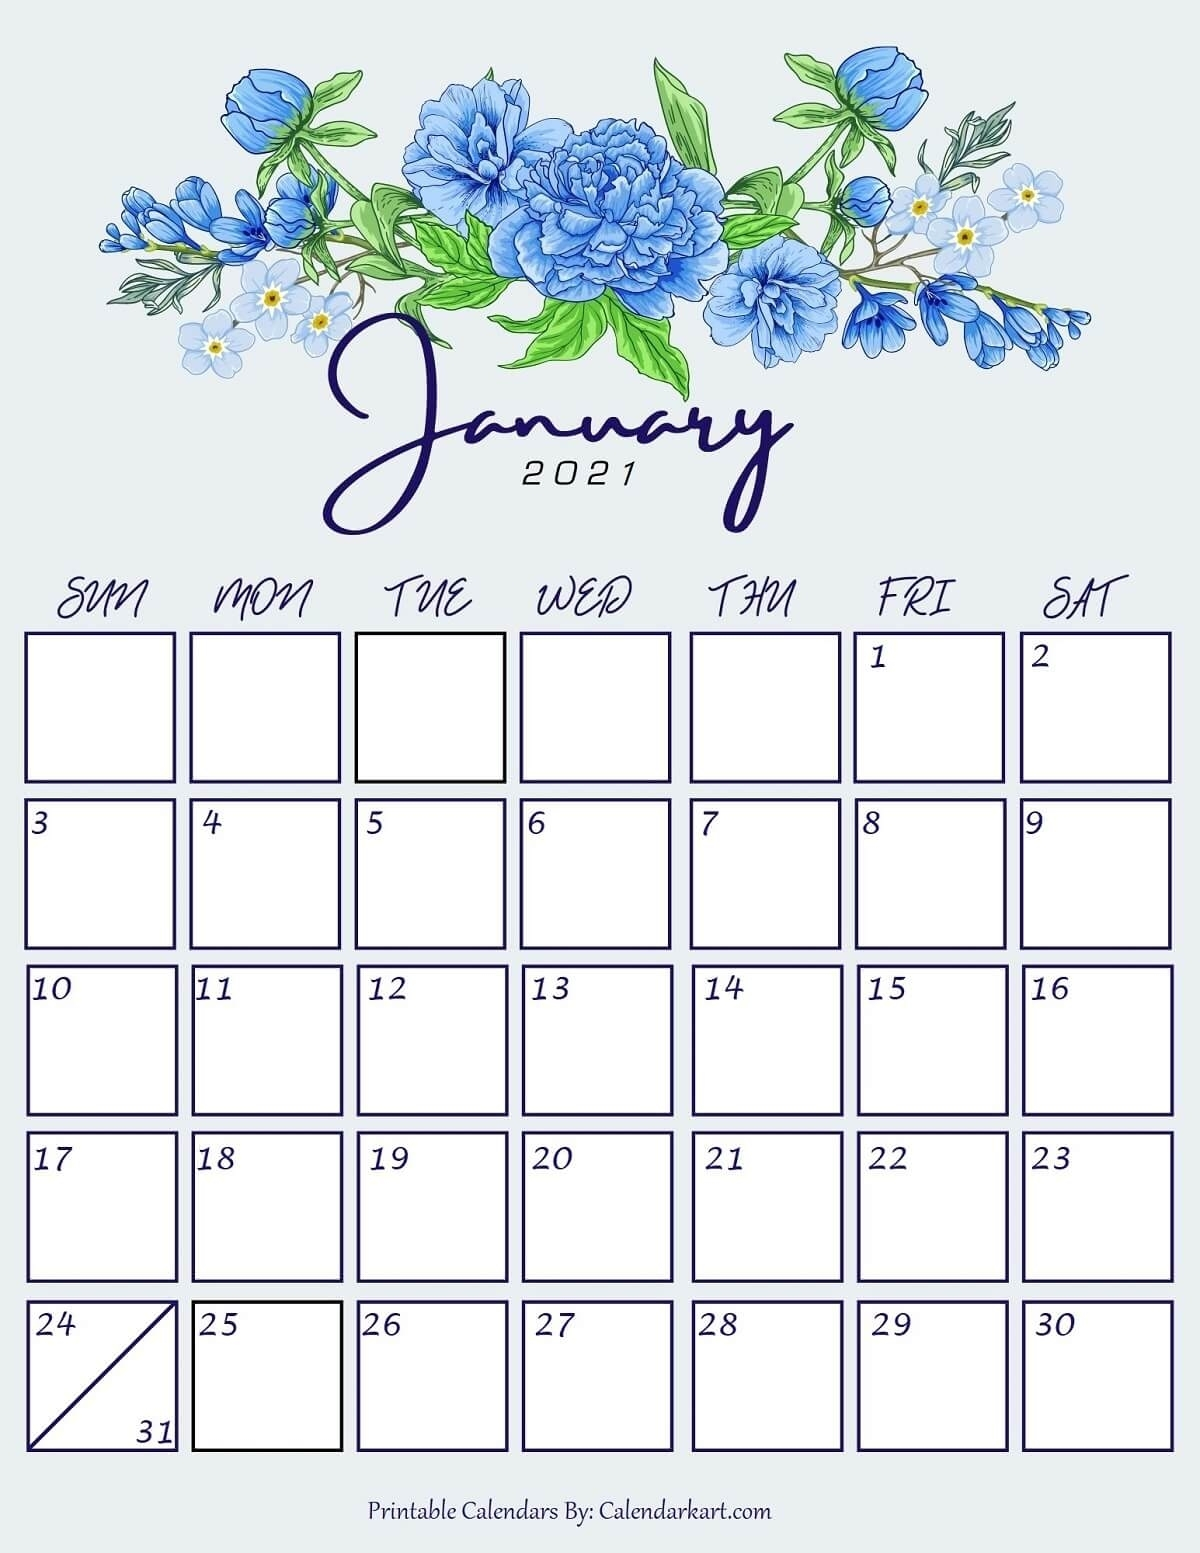 Catch 2021 Calendar Spaces